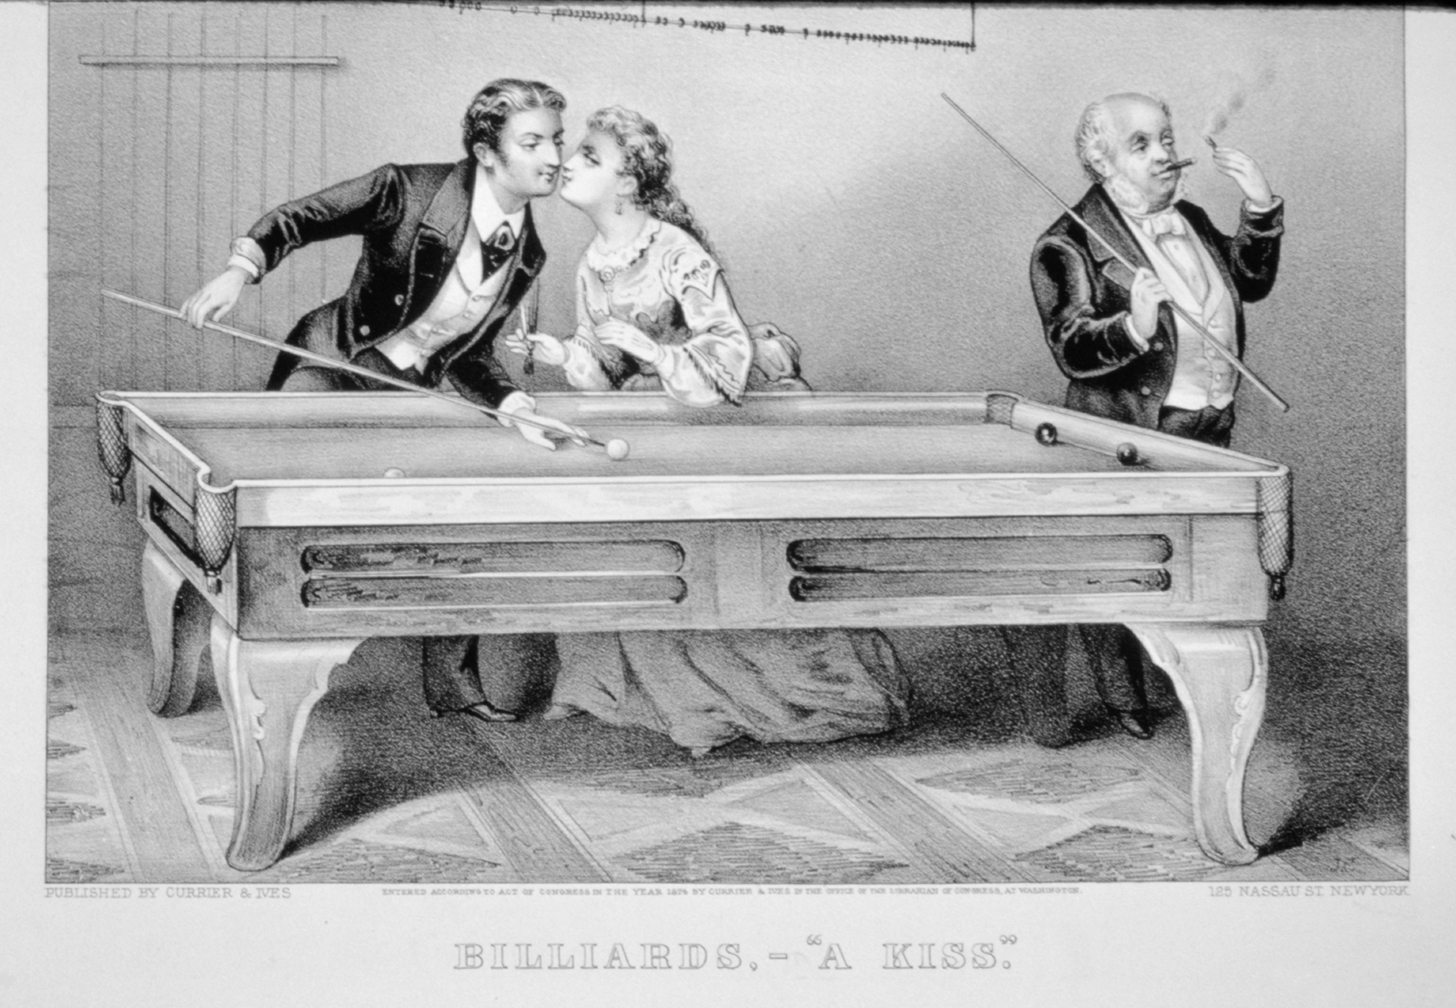 a brief history of the billiards